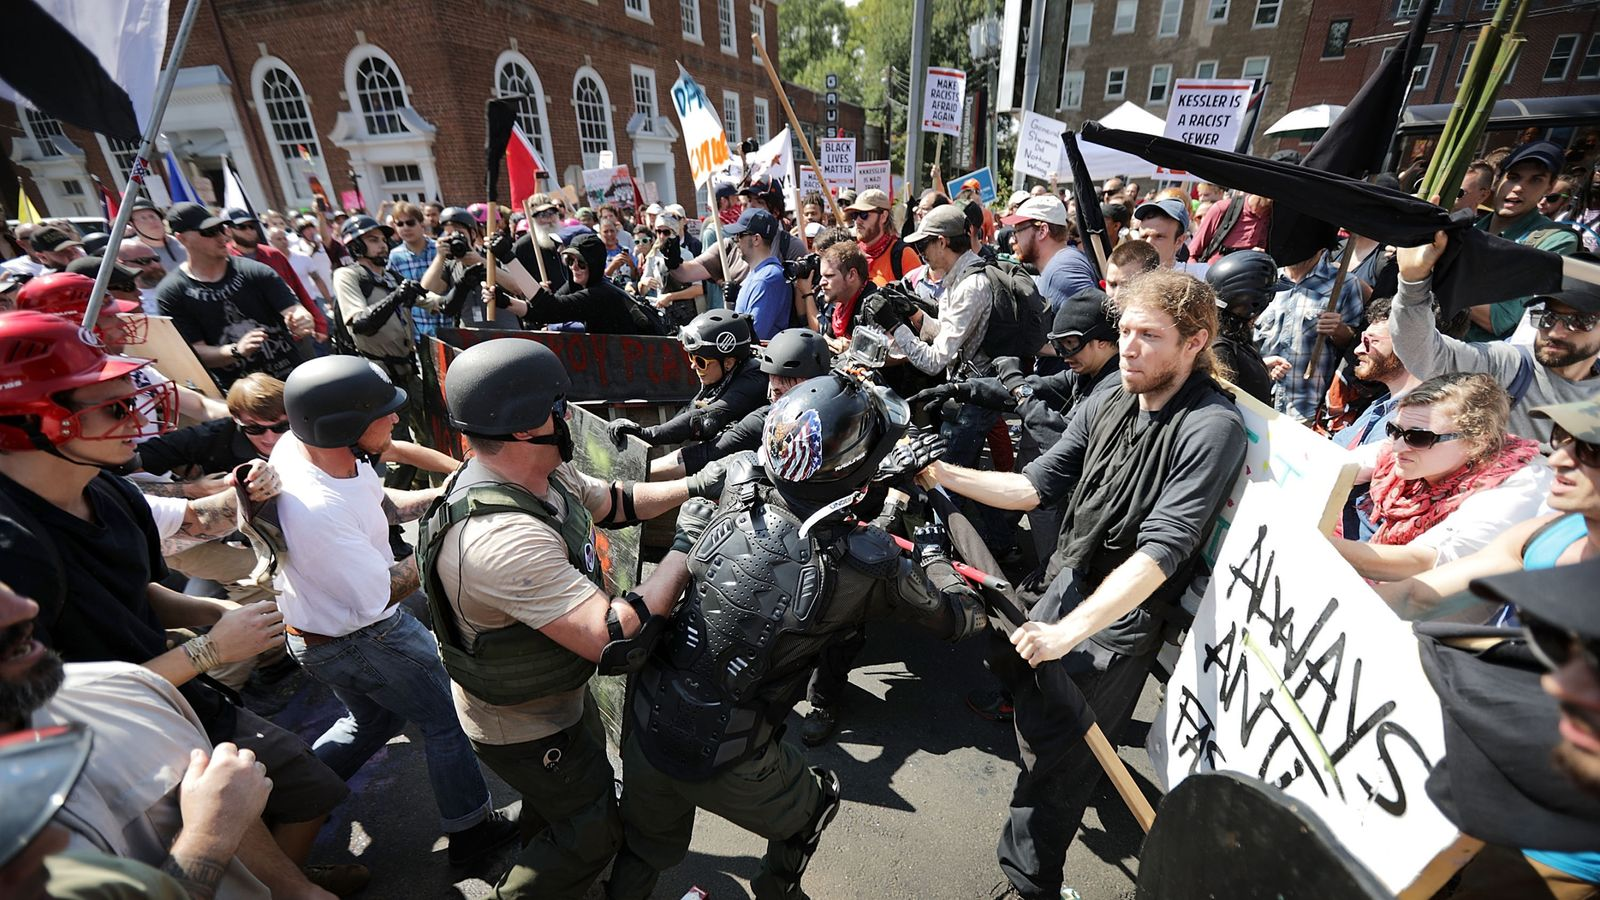 Protests Erupt Across the Country Against Violence in Va. White Nationalist Rally